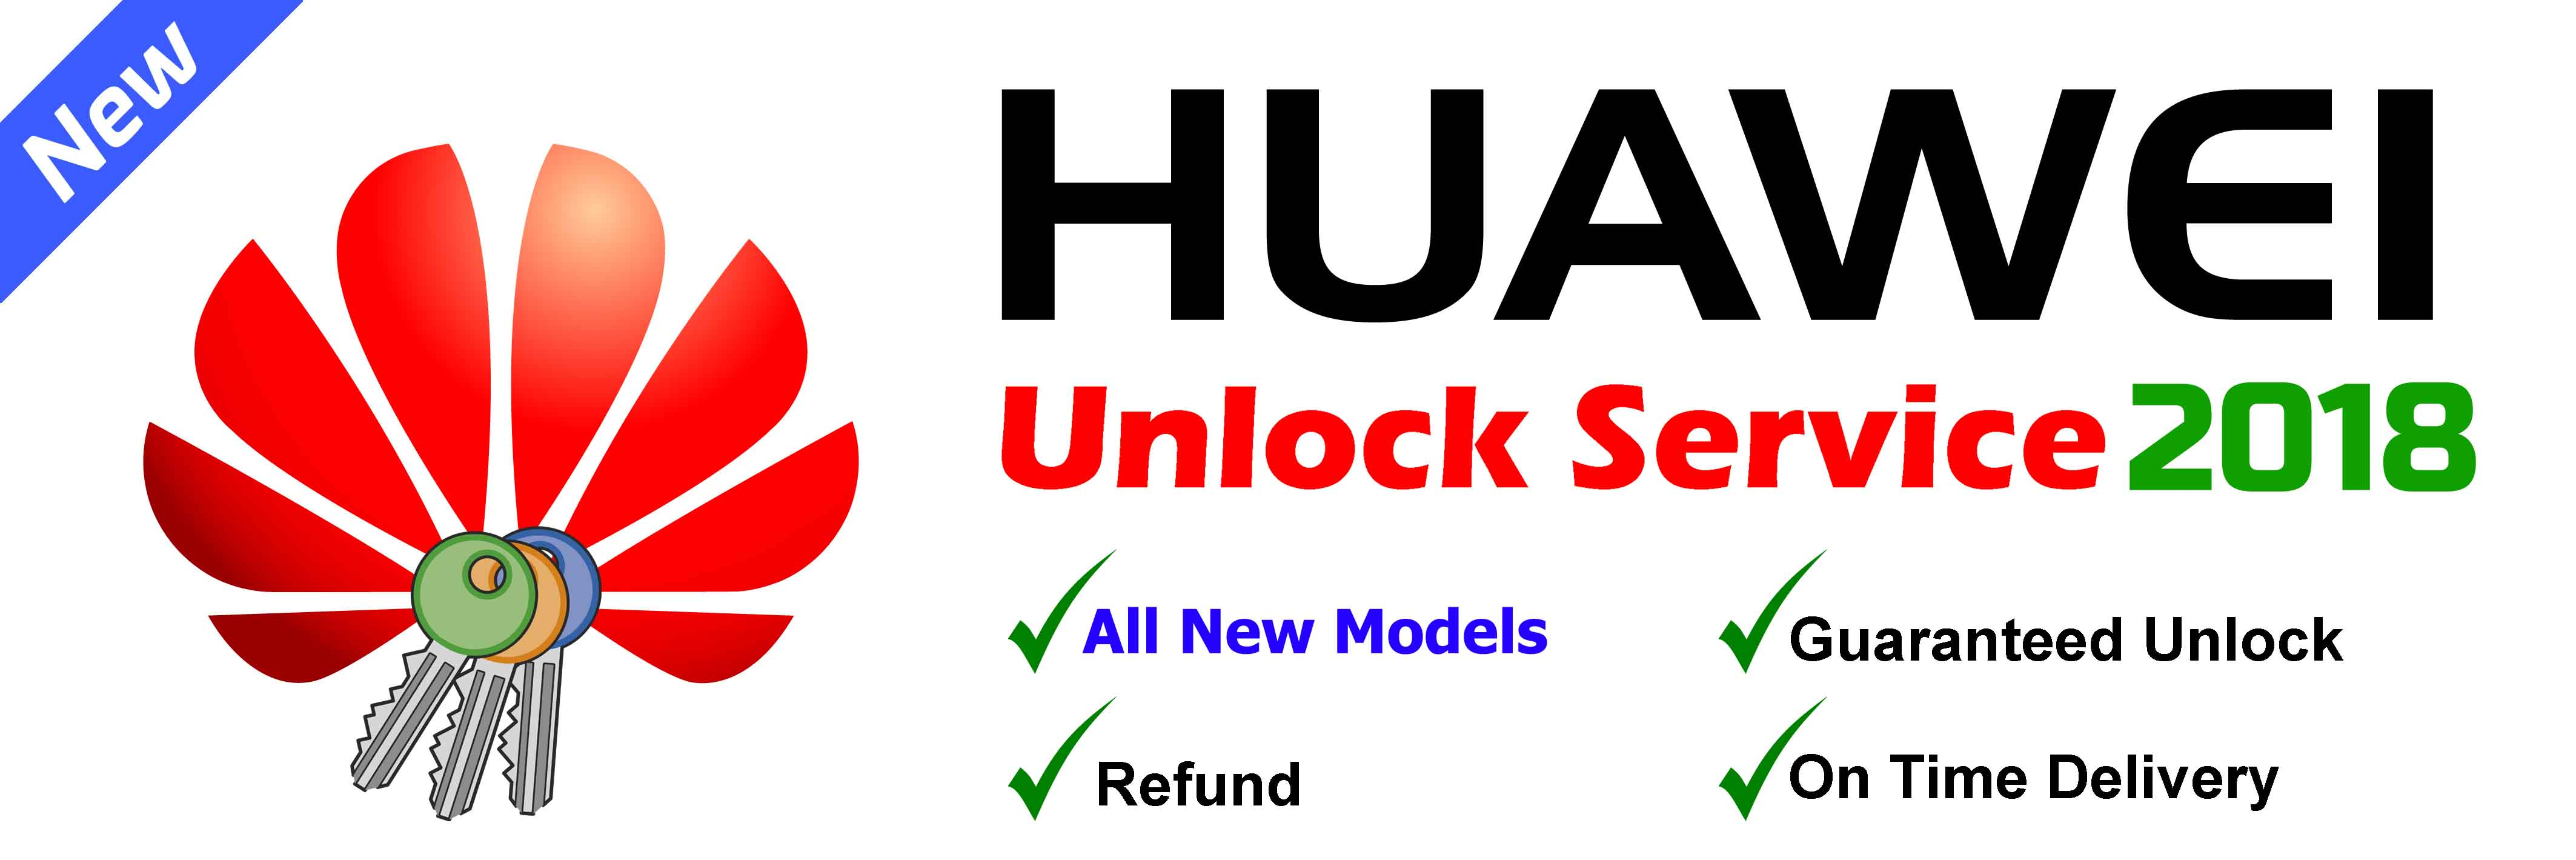 Huawei Bootloader Unlock service (All New Models / New Firmwares